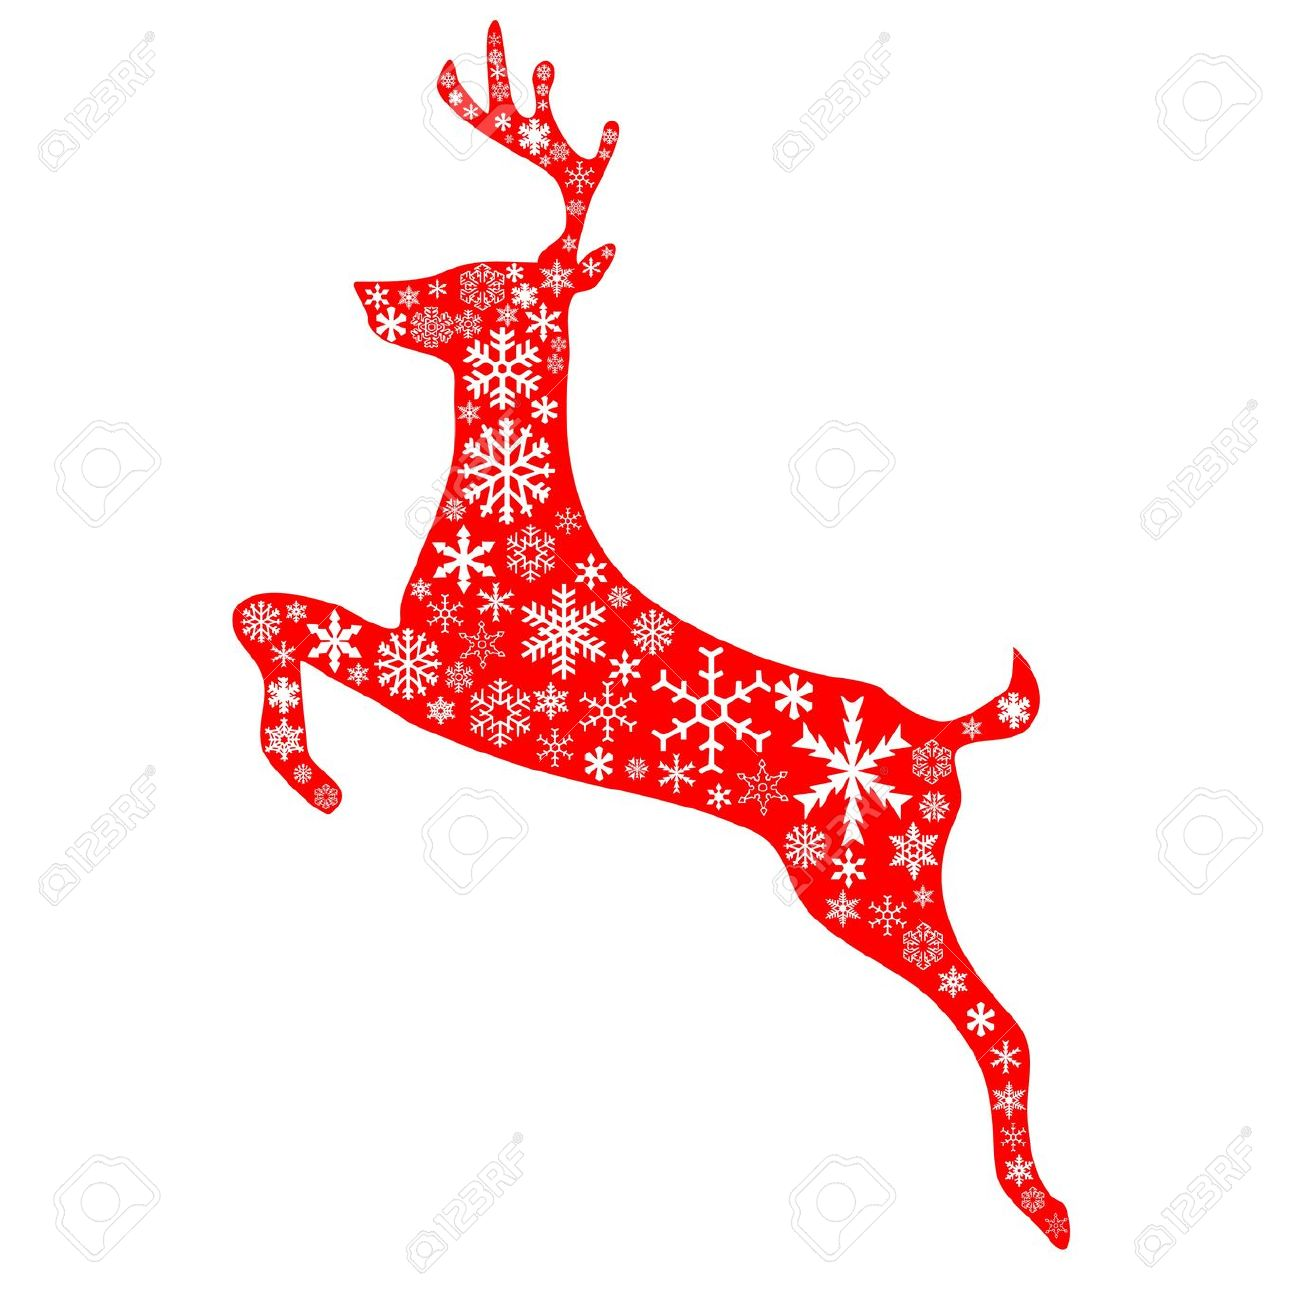 A Jumping Reindeer In Christmas Red Background And White.